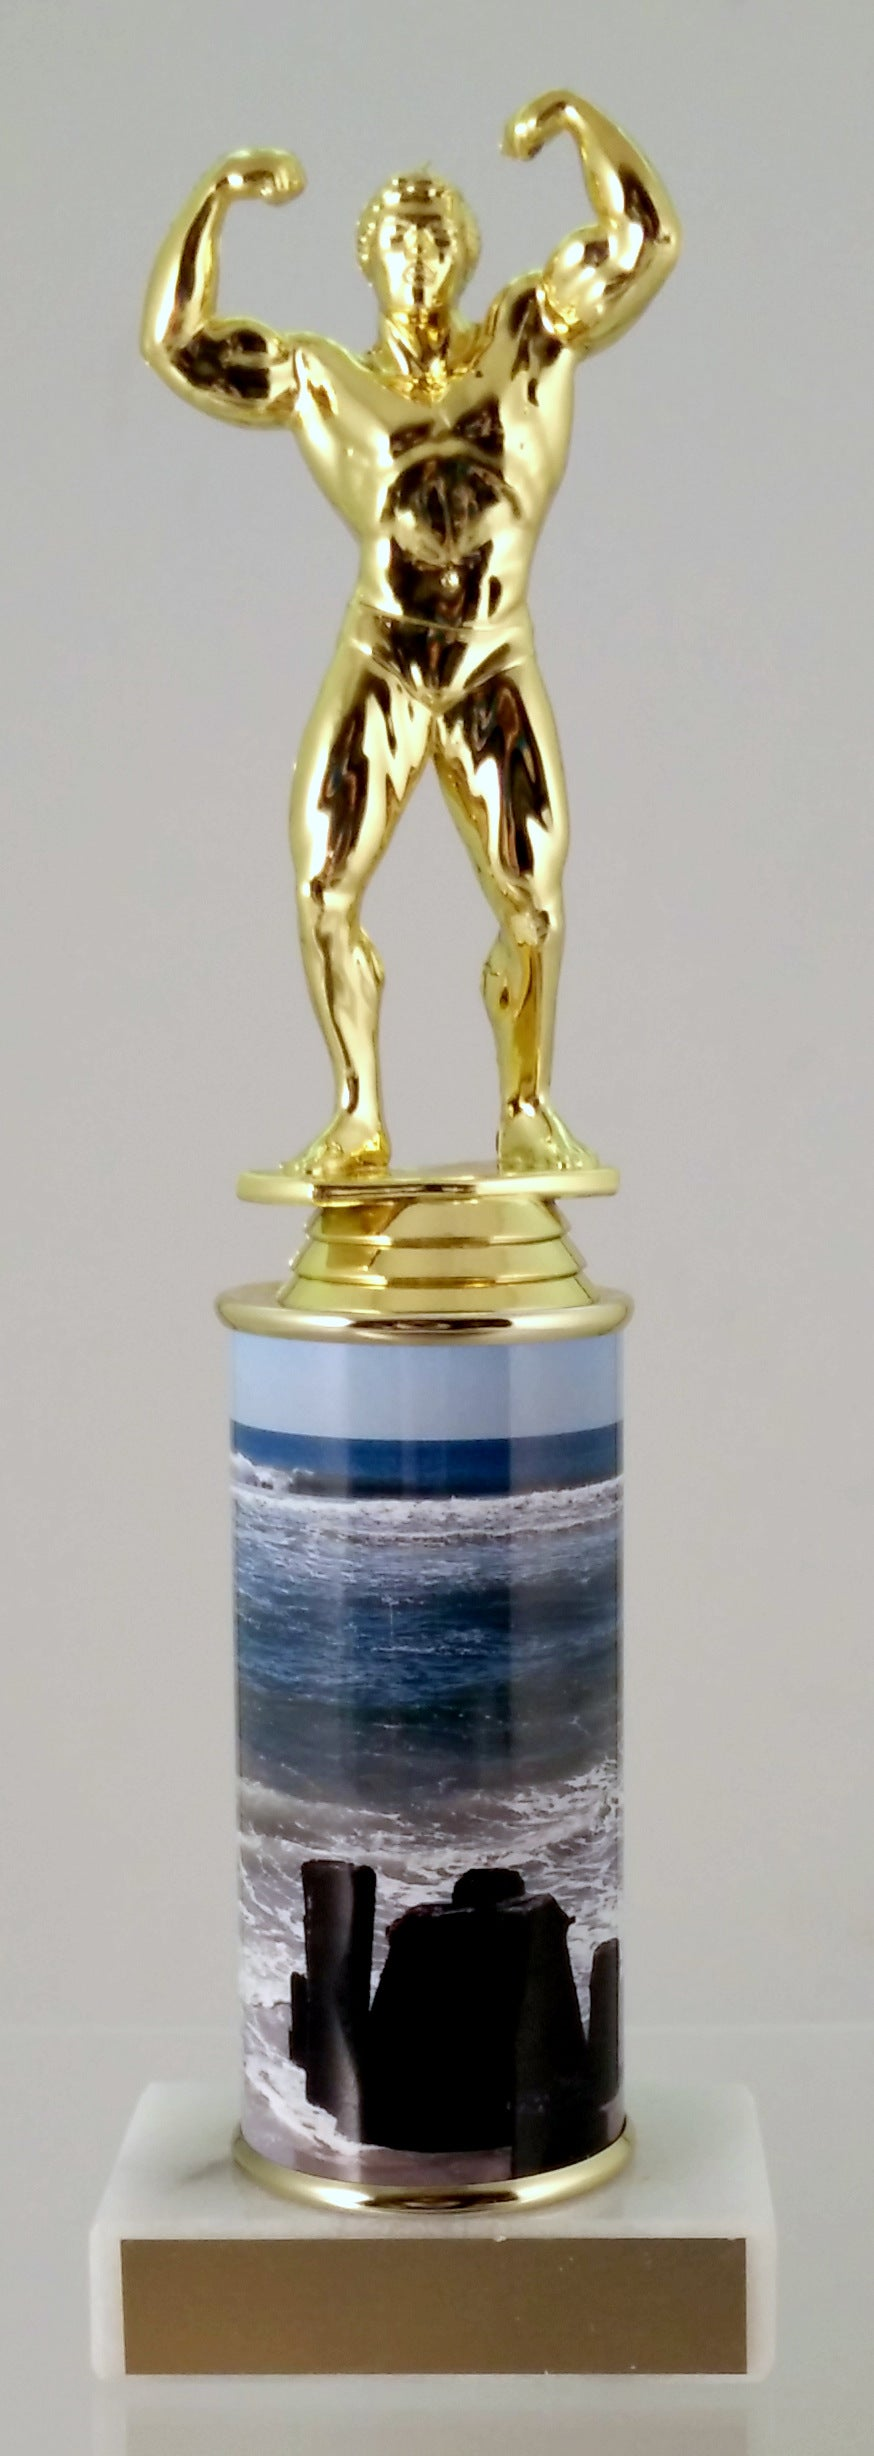 Body Builder Trophy With Beach Metal Column On Marble-Trophy-Schoppy's Since 1921